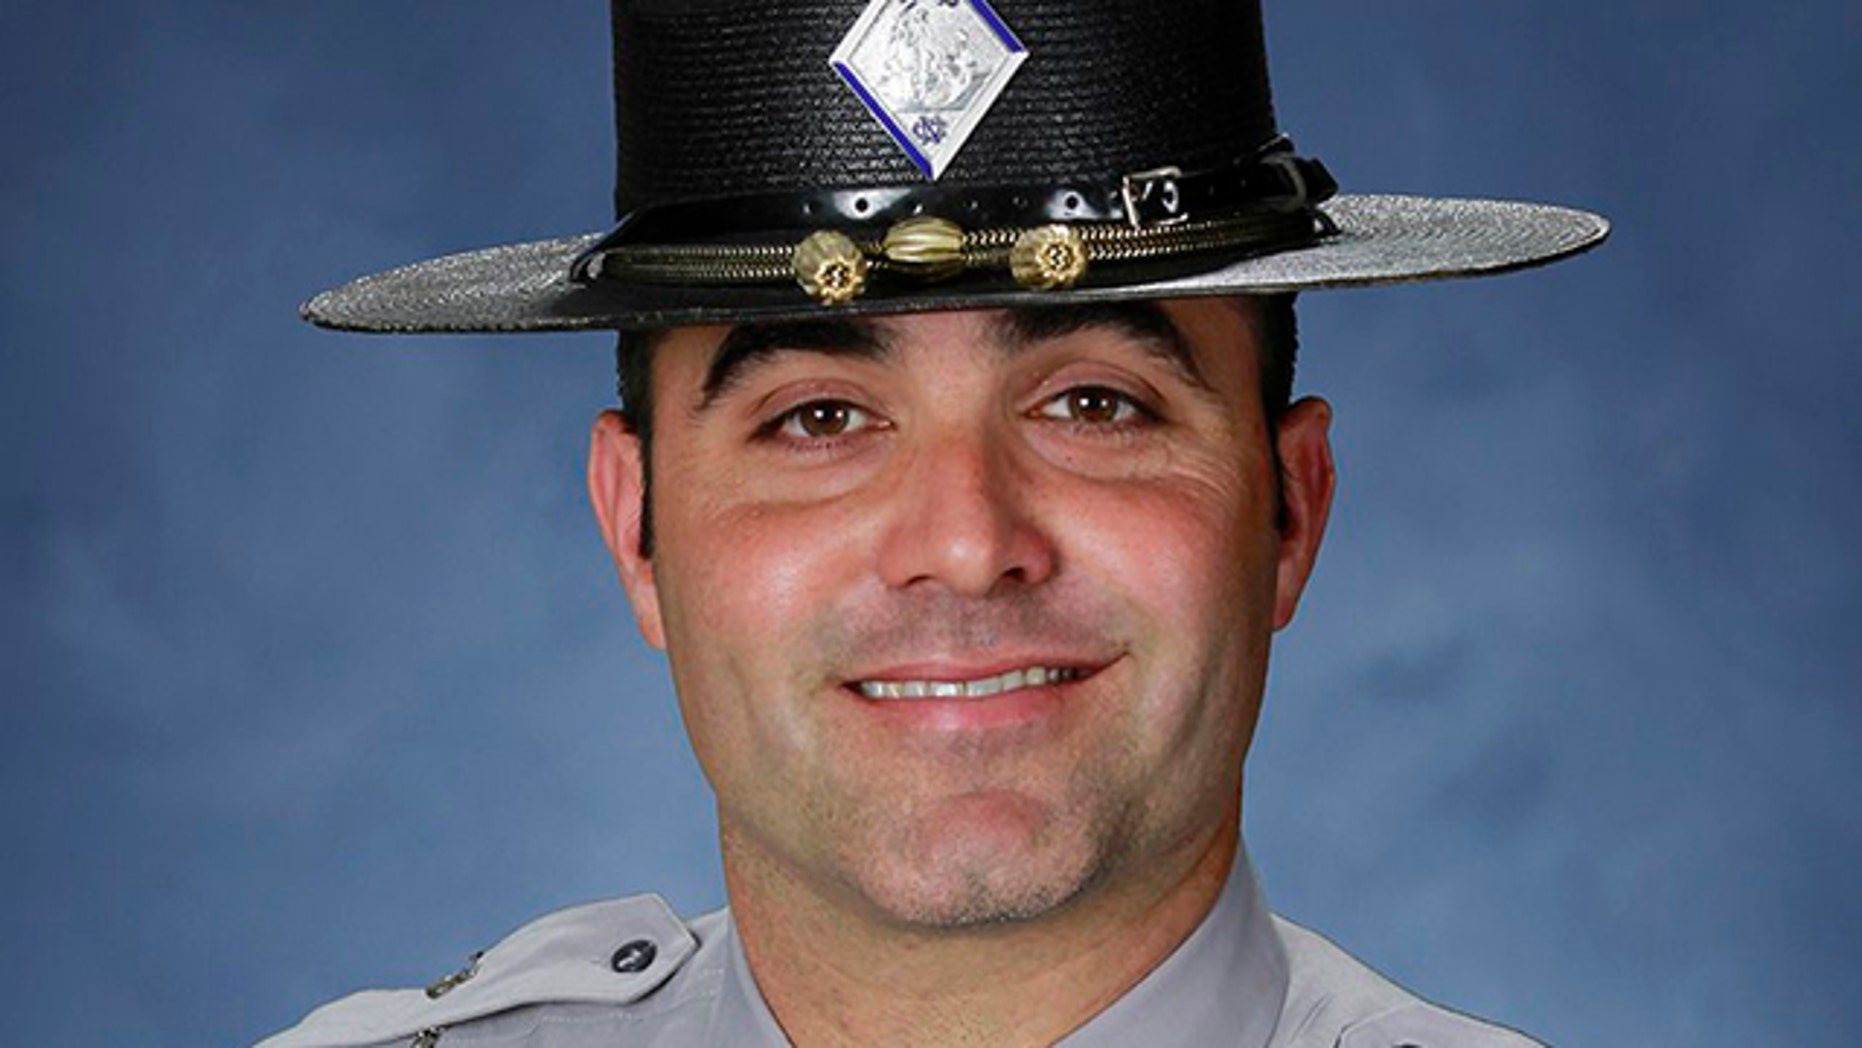 Trooper Kevin Conner, 38, was fatally shot early Wednesday during a traffic stop.